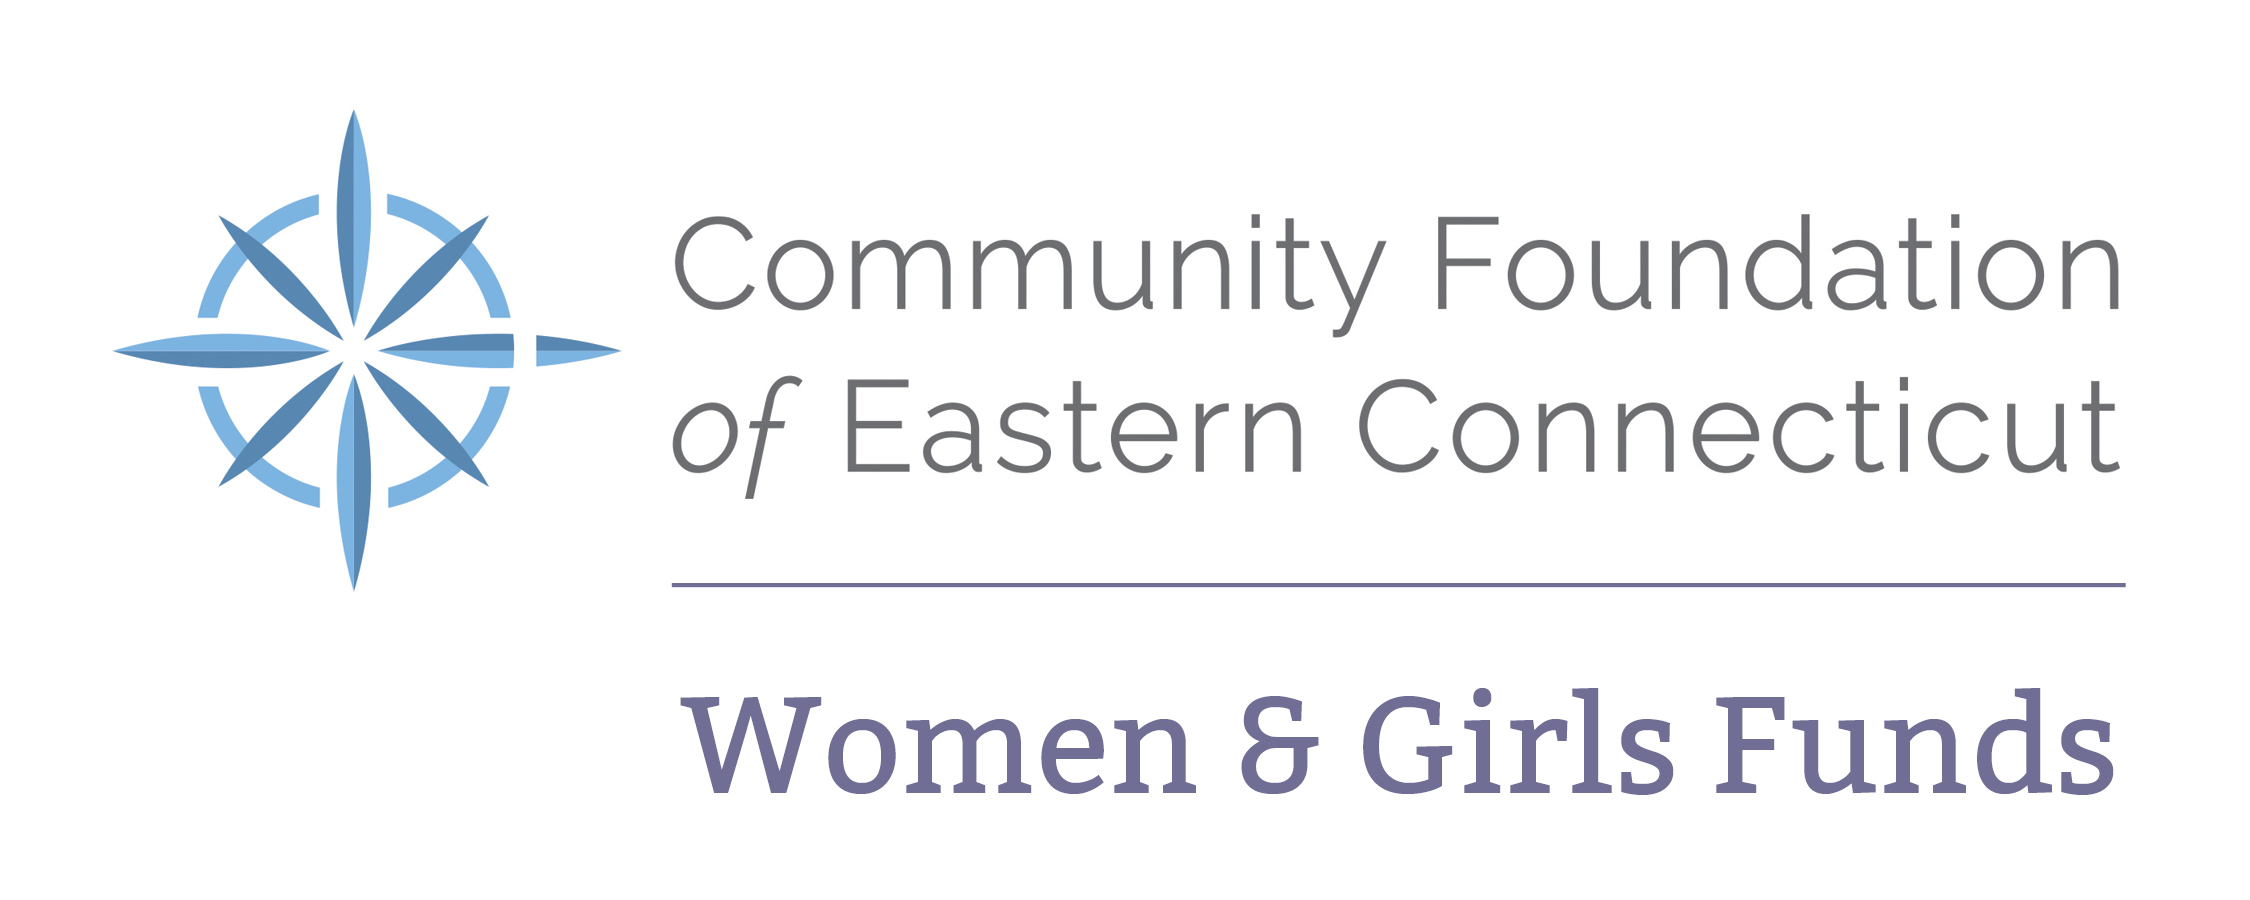 The Community Foundation of Eastern Connecticut